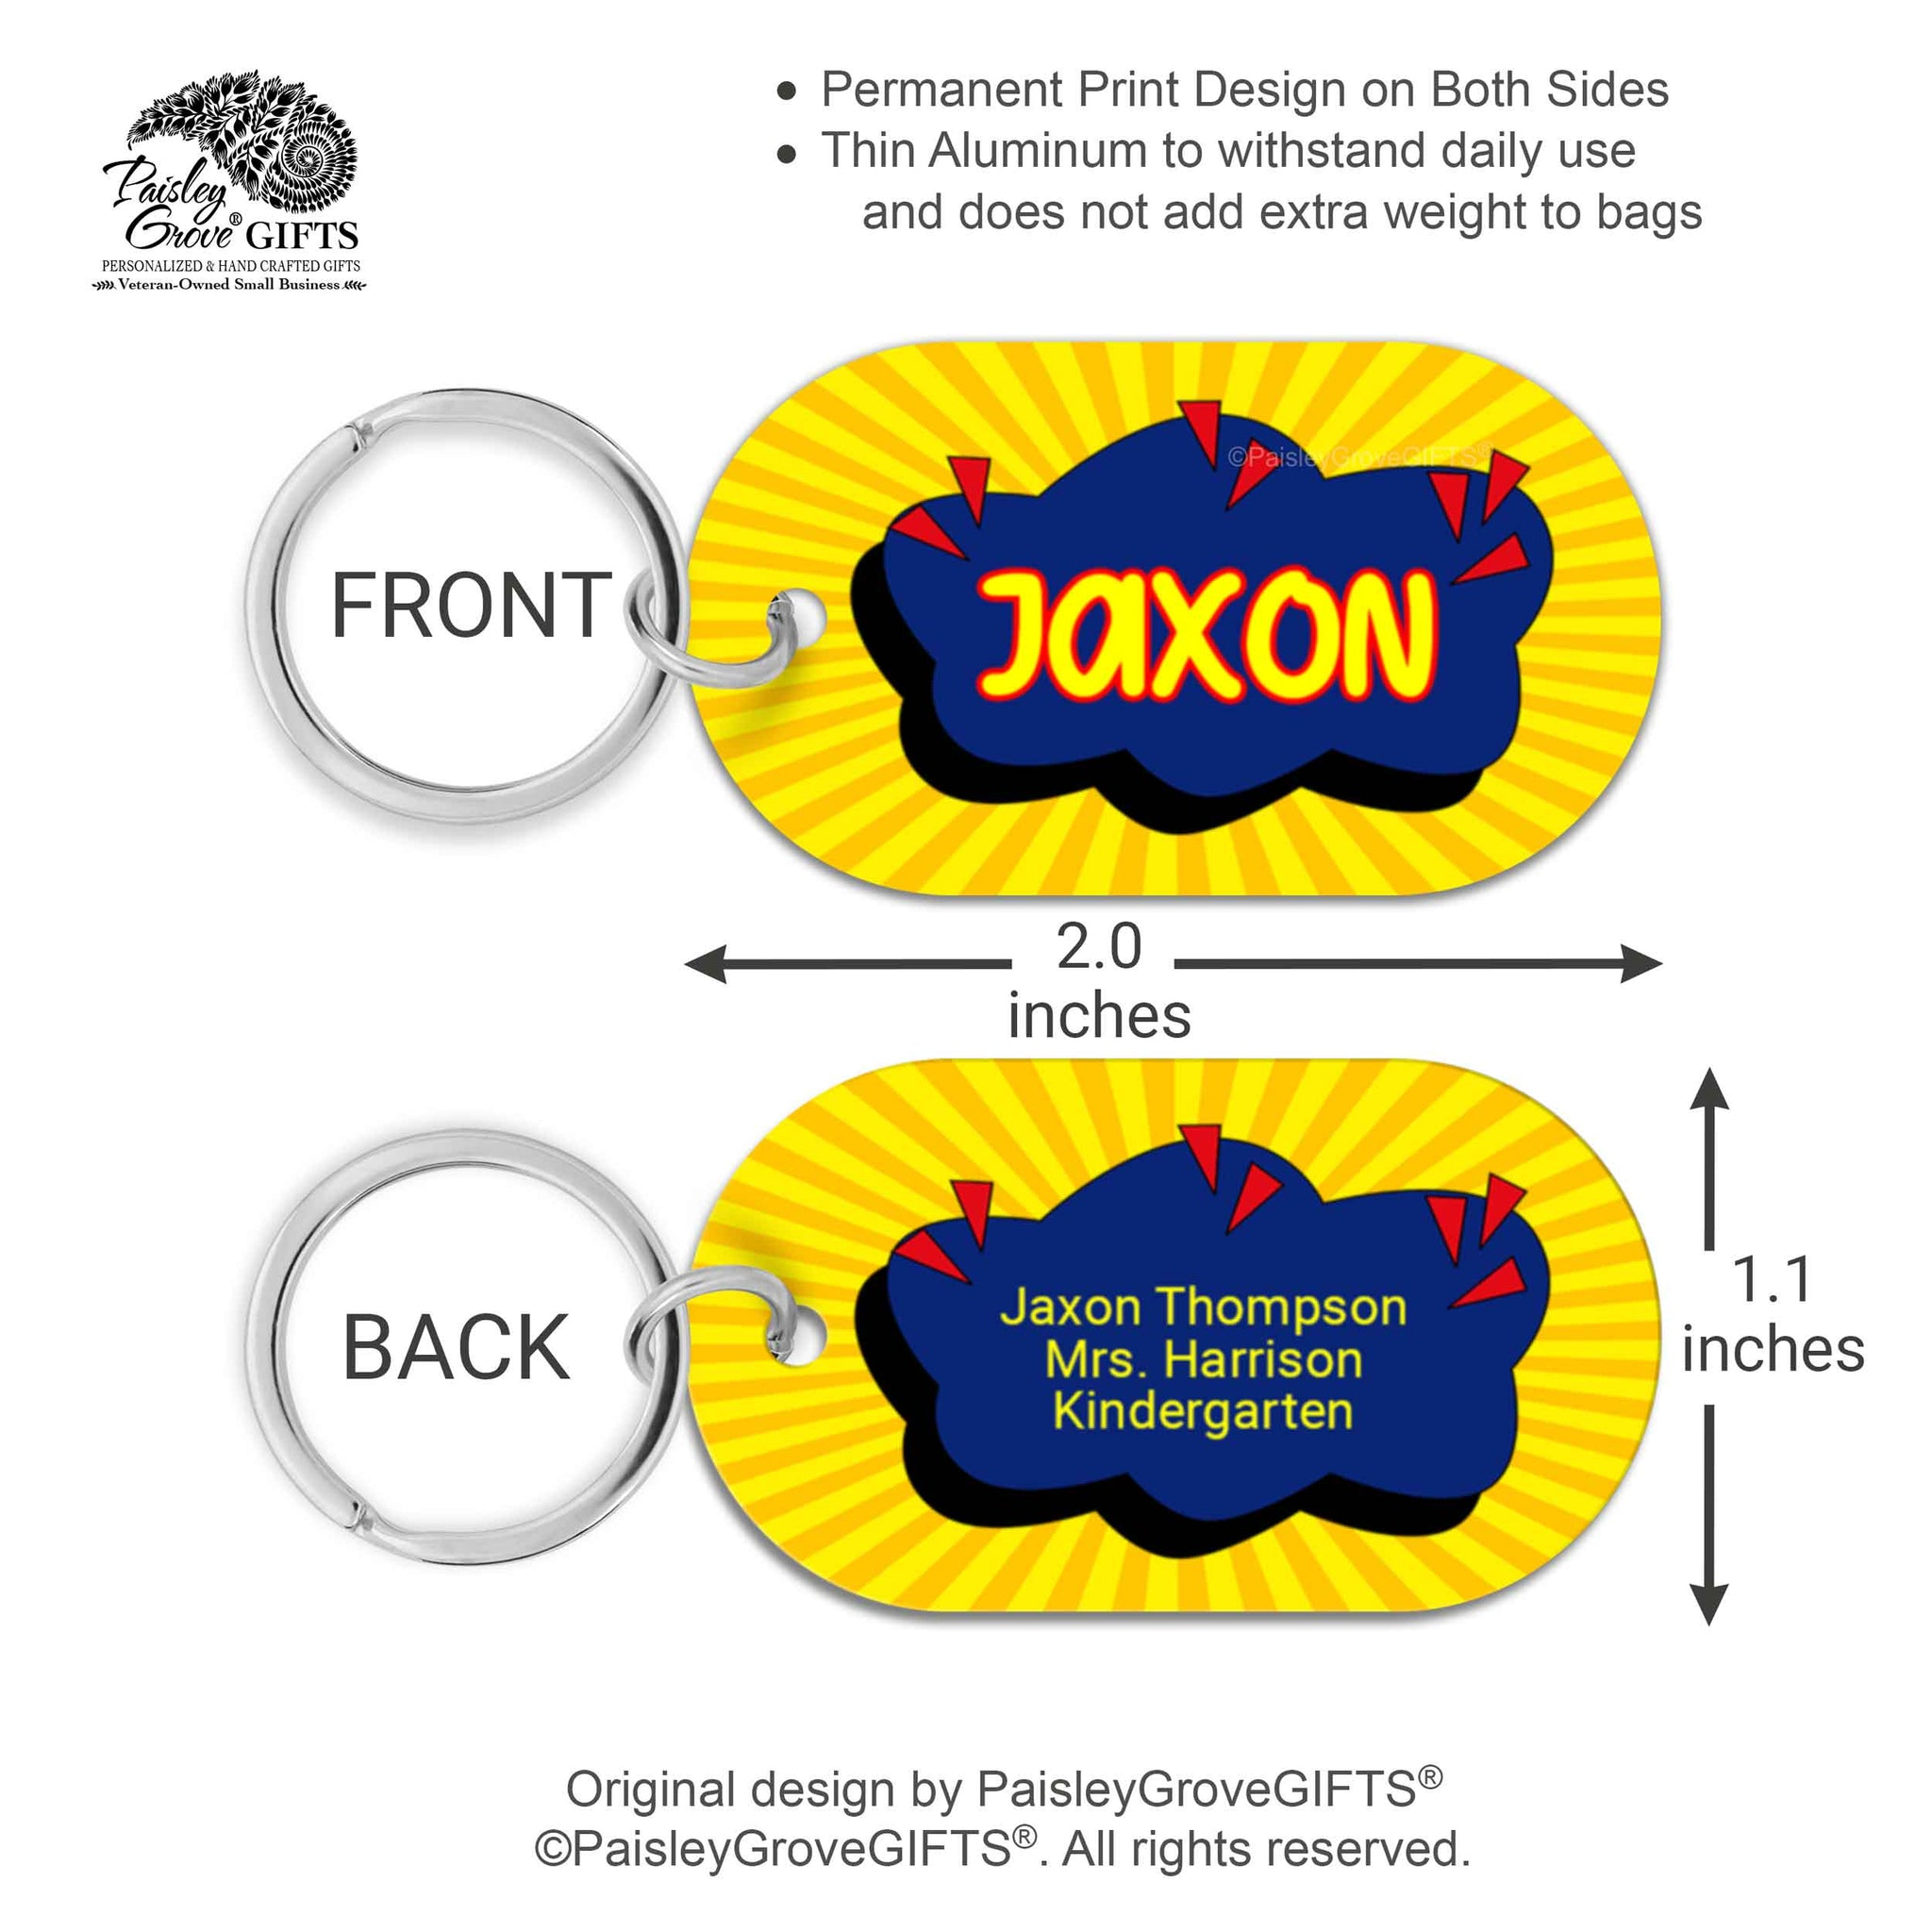 CopyrightPaisleyGroveGIFTS S070a2 Custom bag identification labels for kids school bags measurements